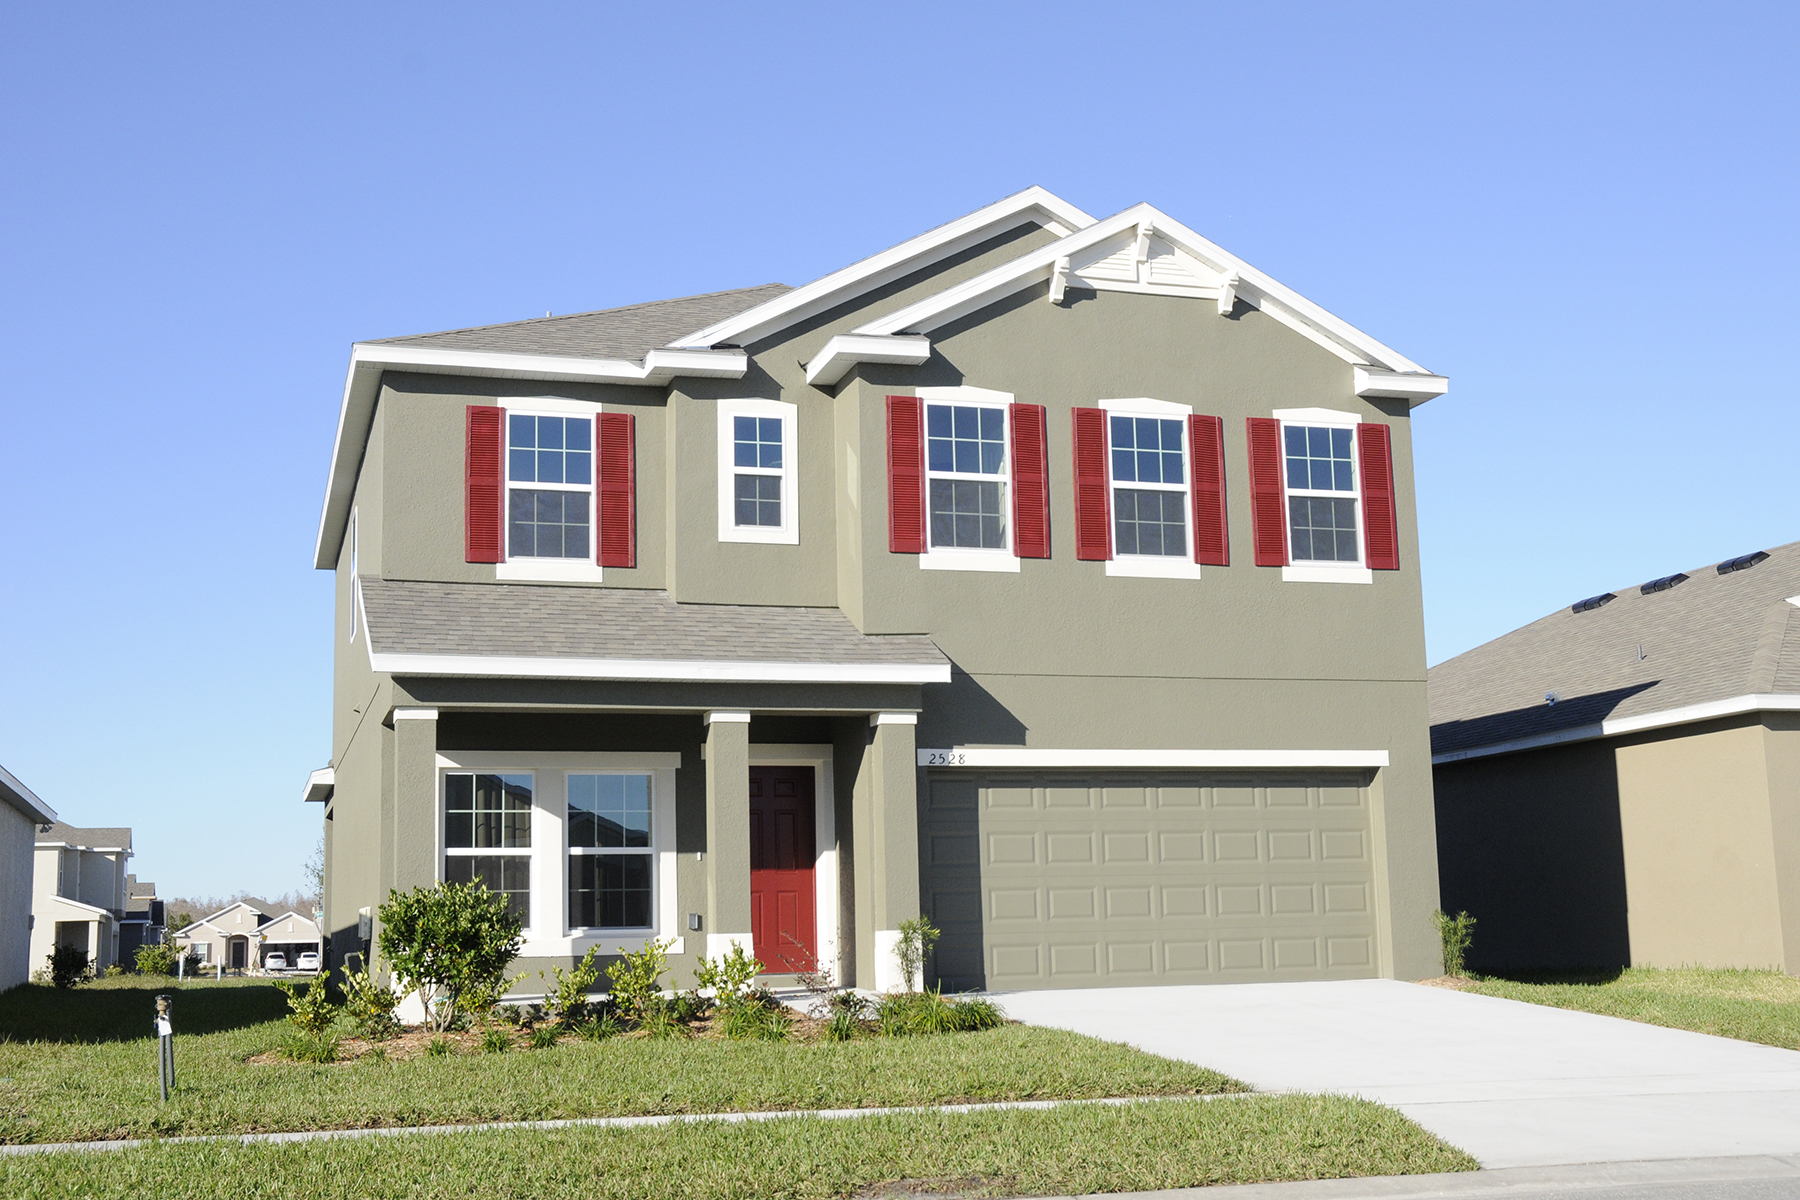 Single Family Home for Sale at ORLANDO - KISSIMMEE 2528 Isabela Terr Kissimmee, Florida, 34743 United States